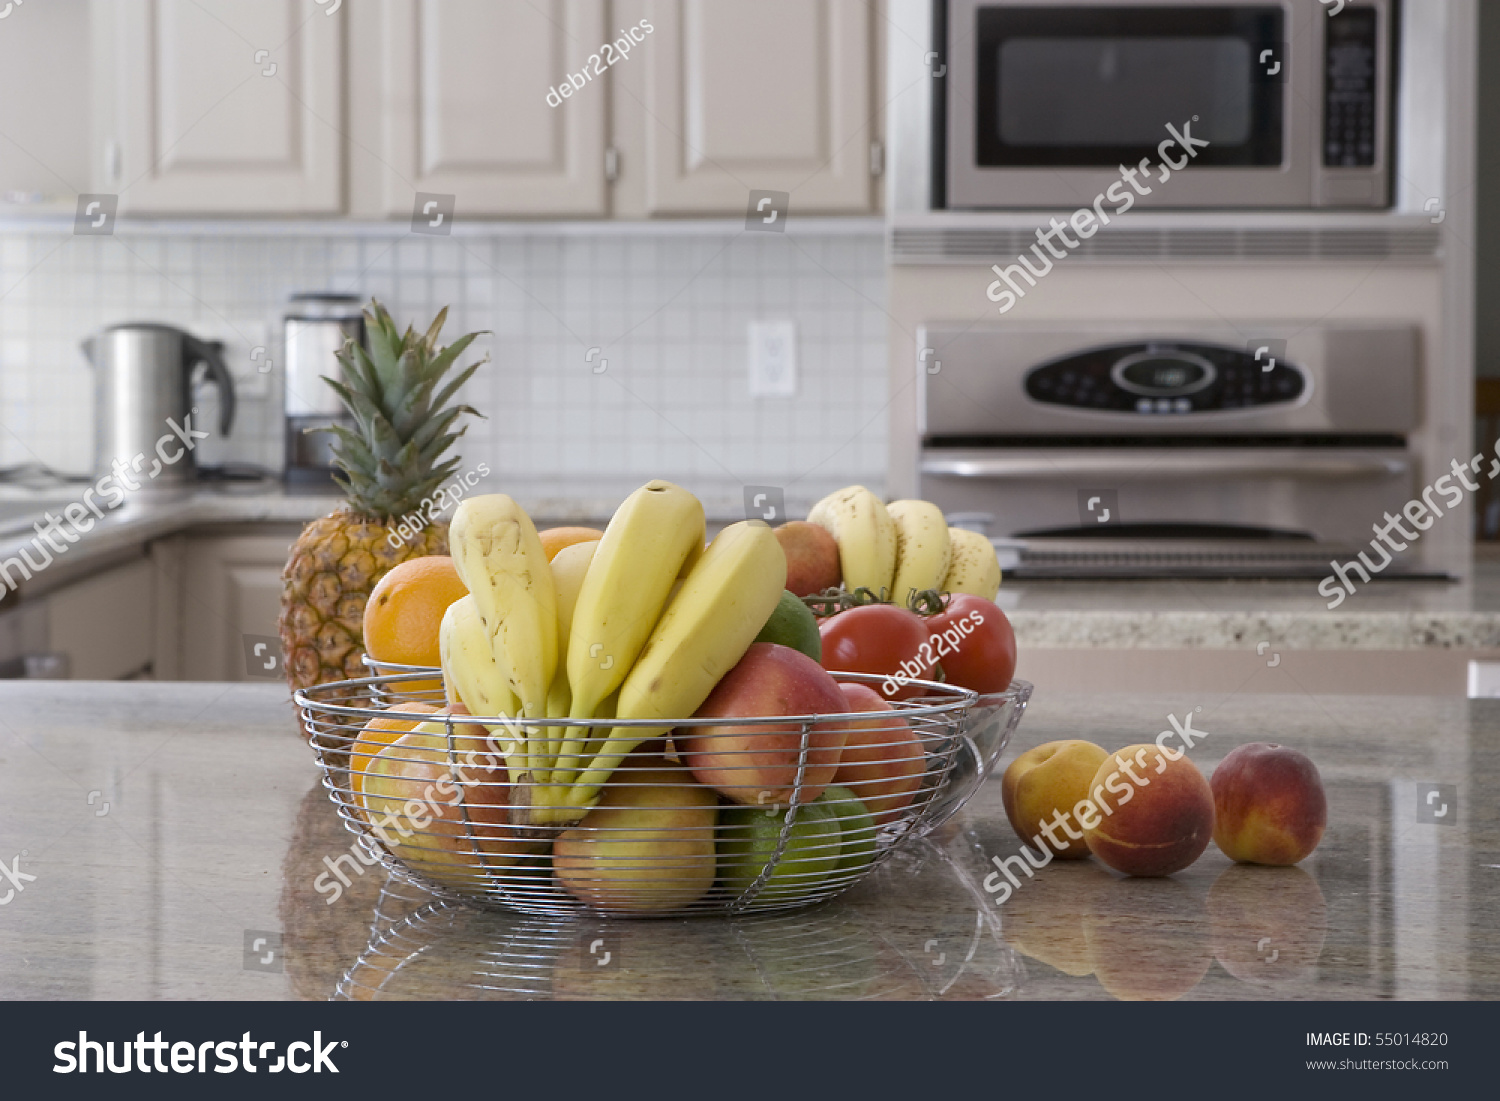 Bowl Of Assorted Fruit In Modern Grey Kitchen Stock Photo